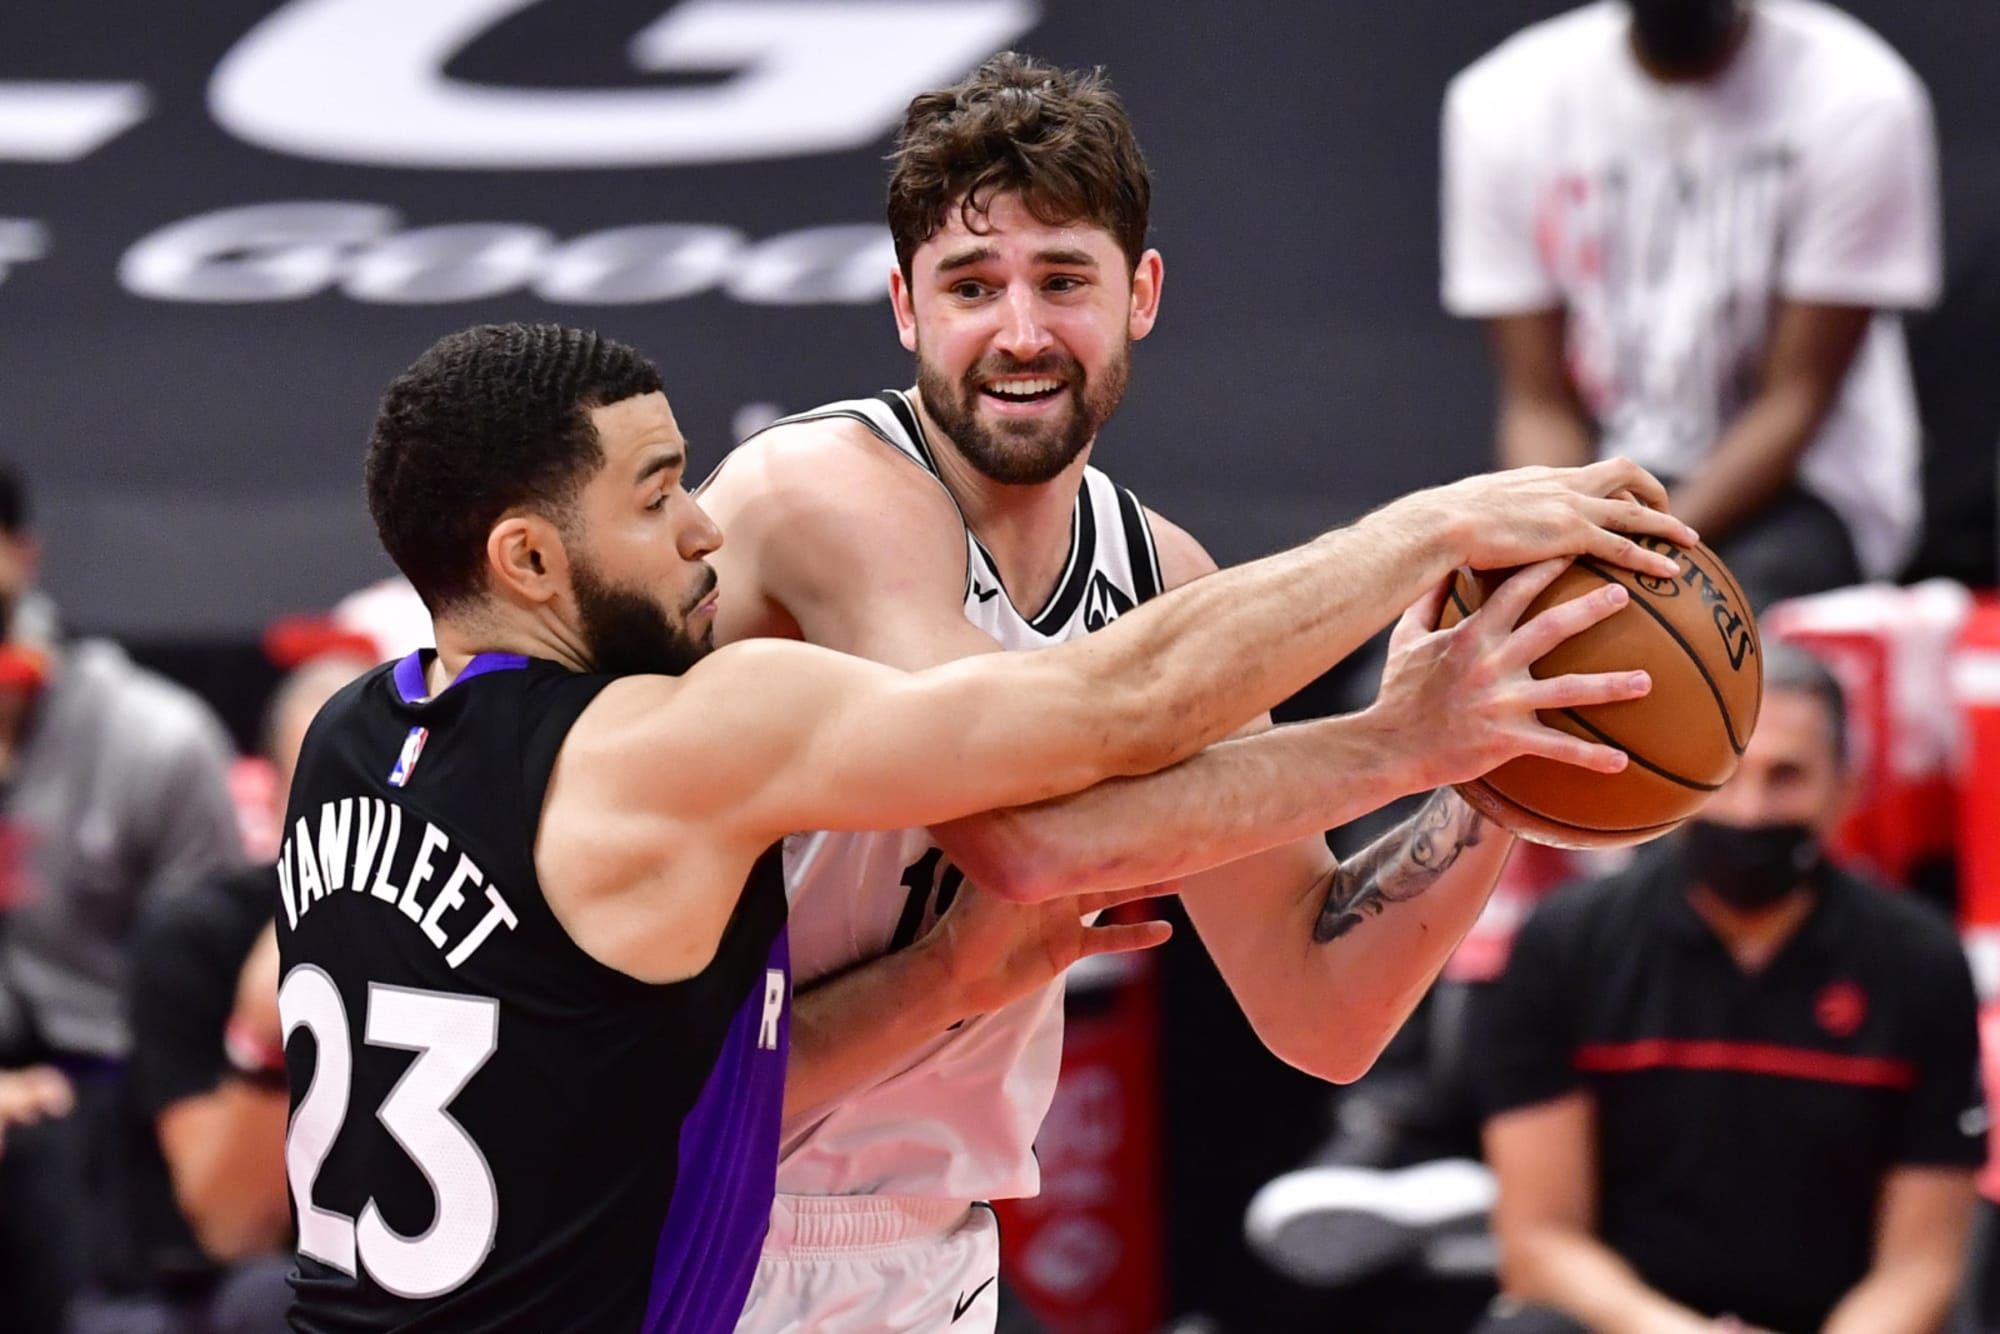 Toronto Raptors: Second half flurry leads to huge win over injured Nets